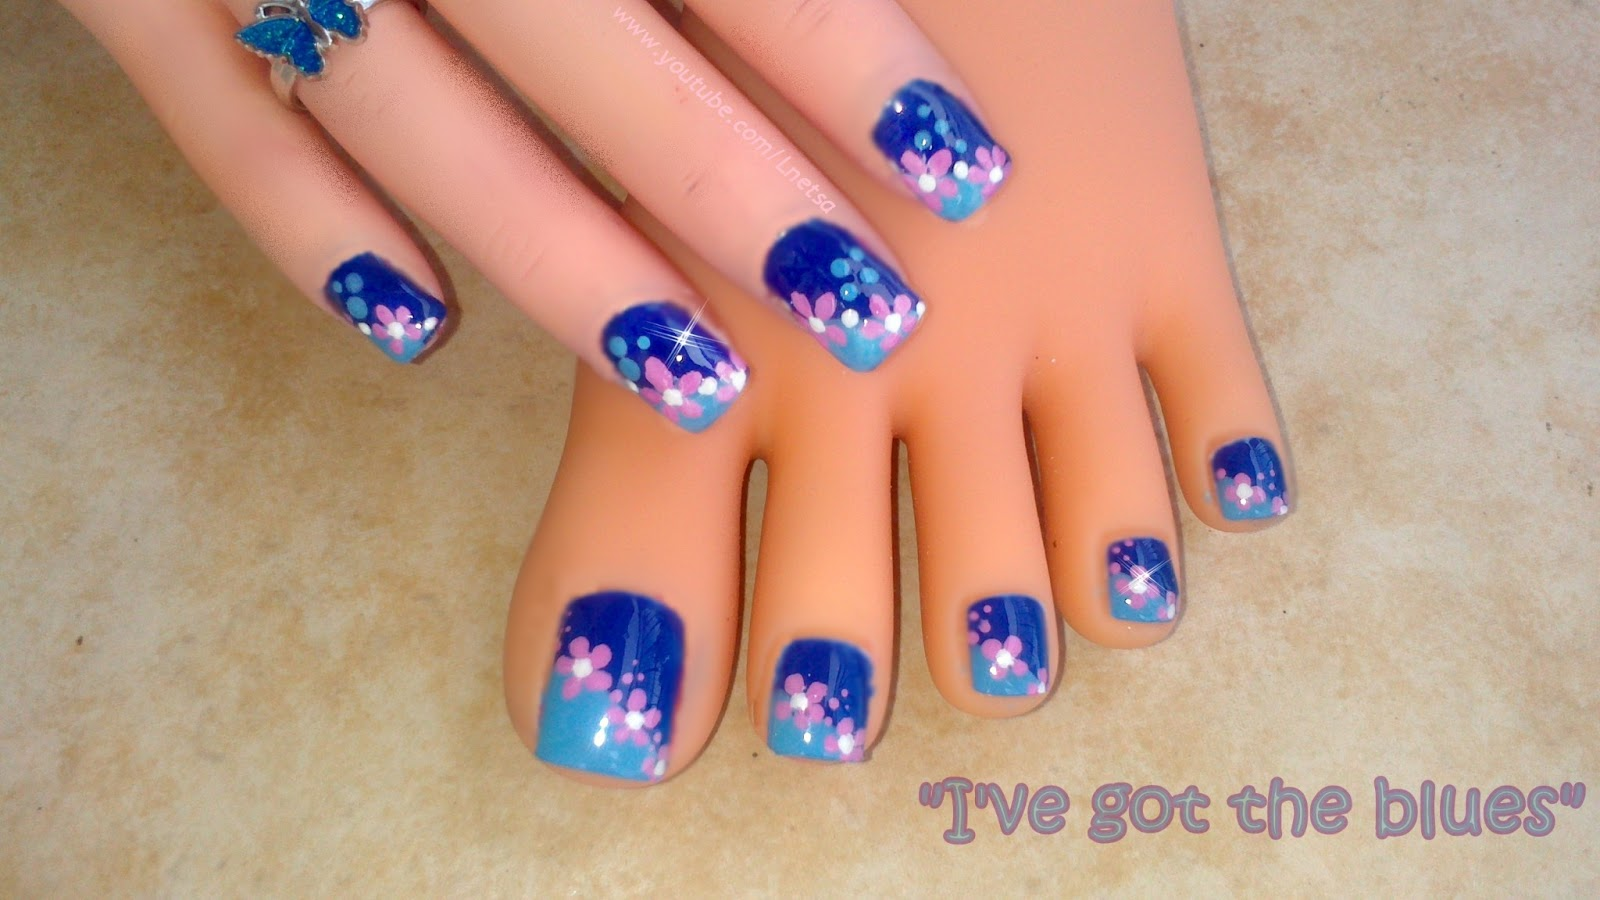 Lnetsa s nailart toe nail design and short nails version i toe nail design and short nails version i ve got the blues prinsesfo Gallery